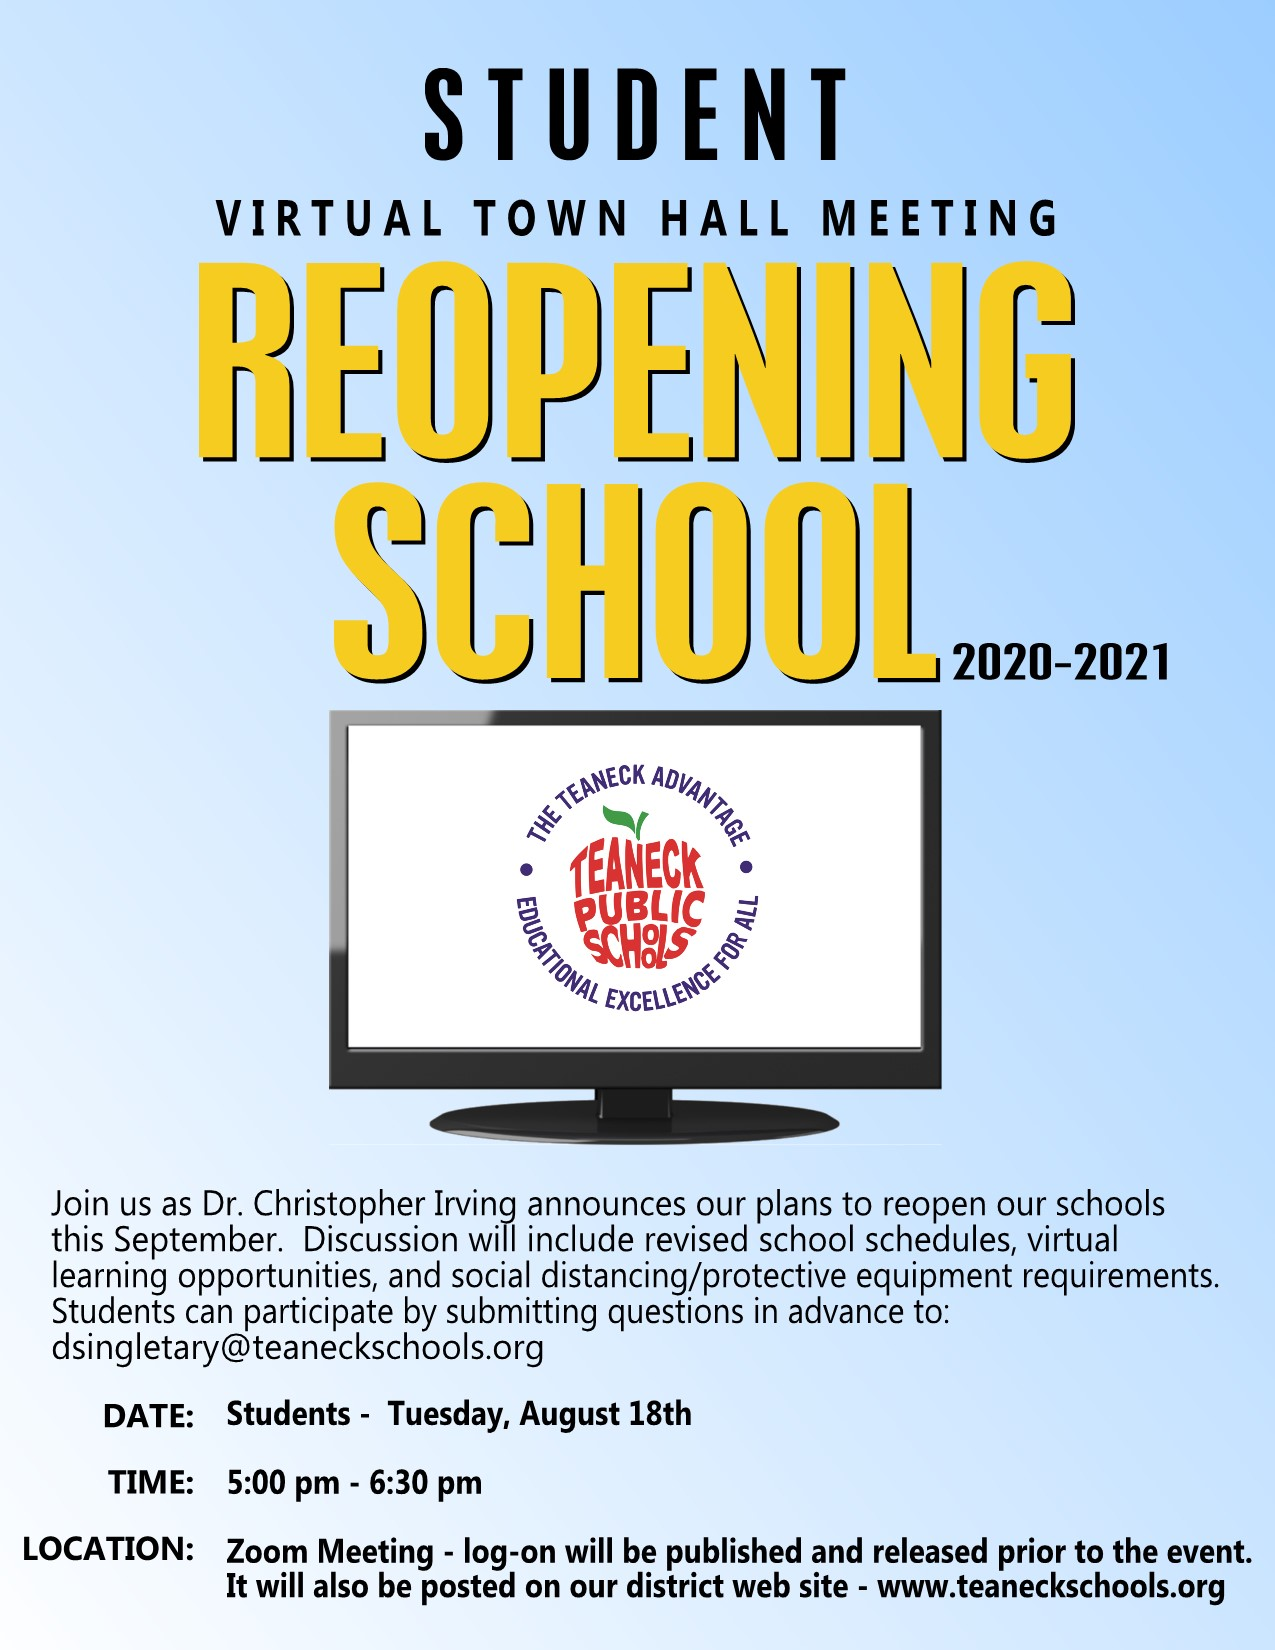 student town hall meeting